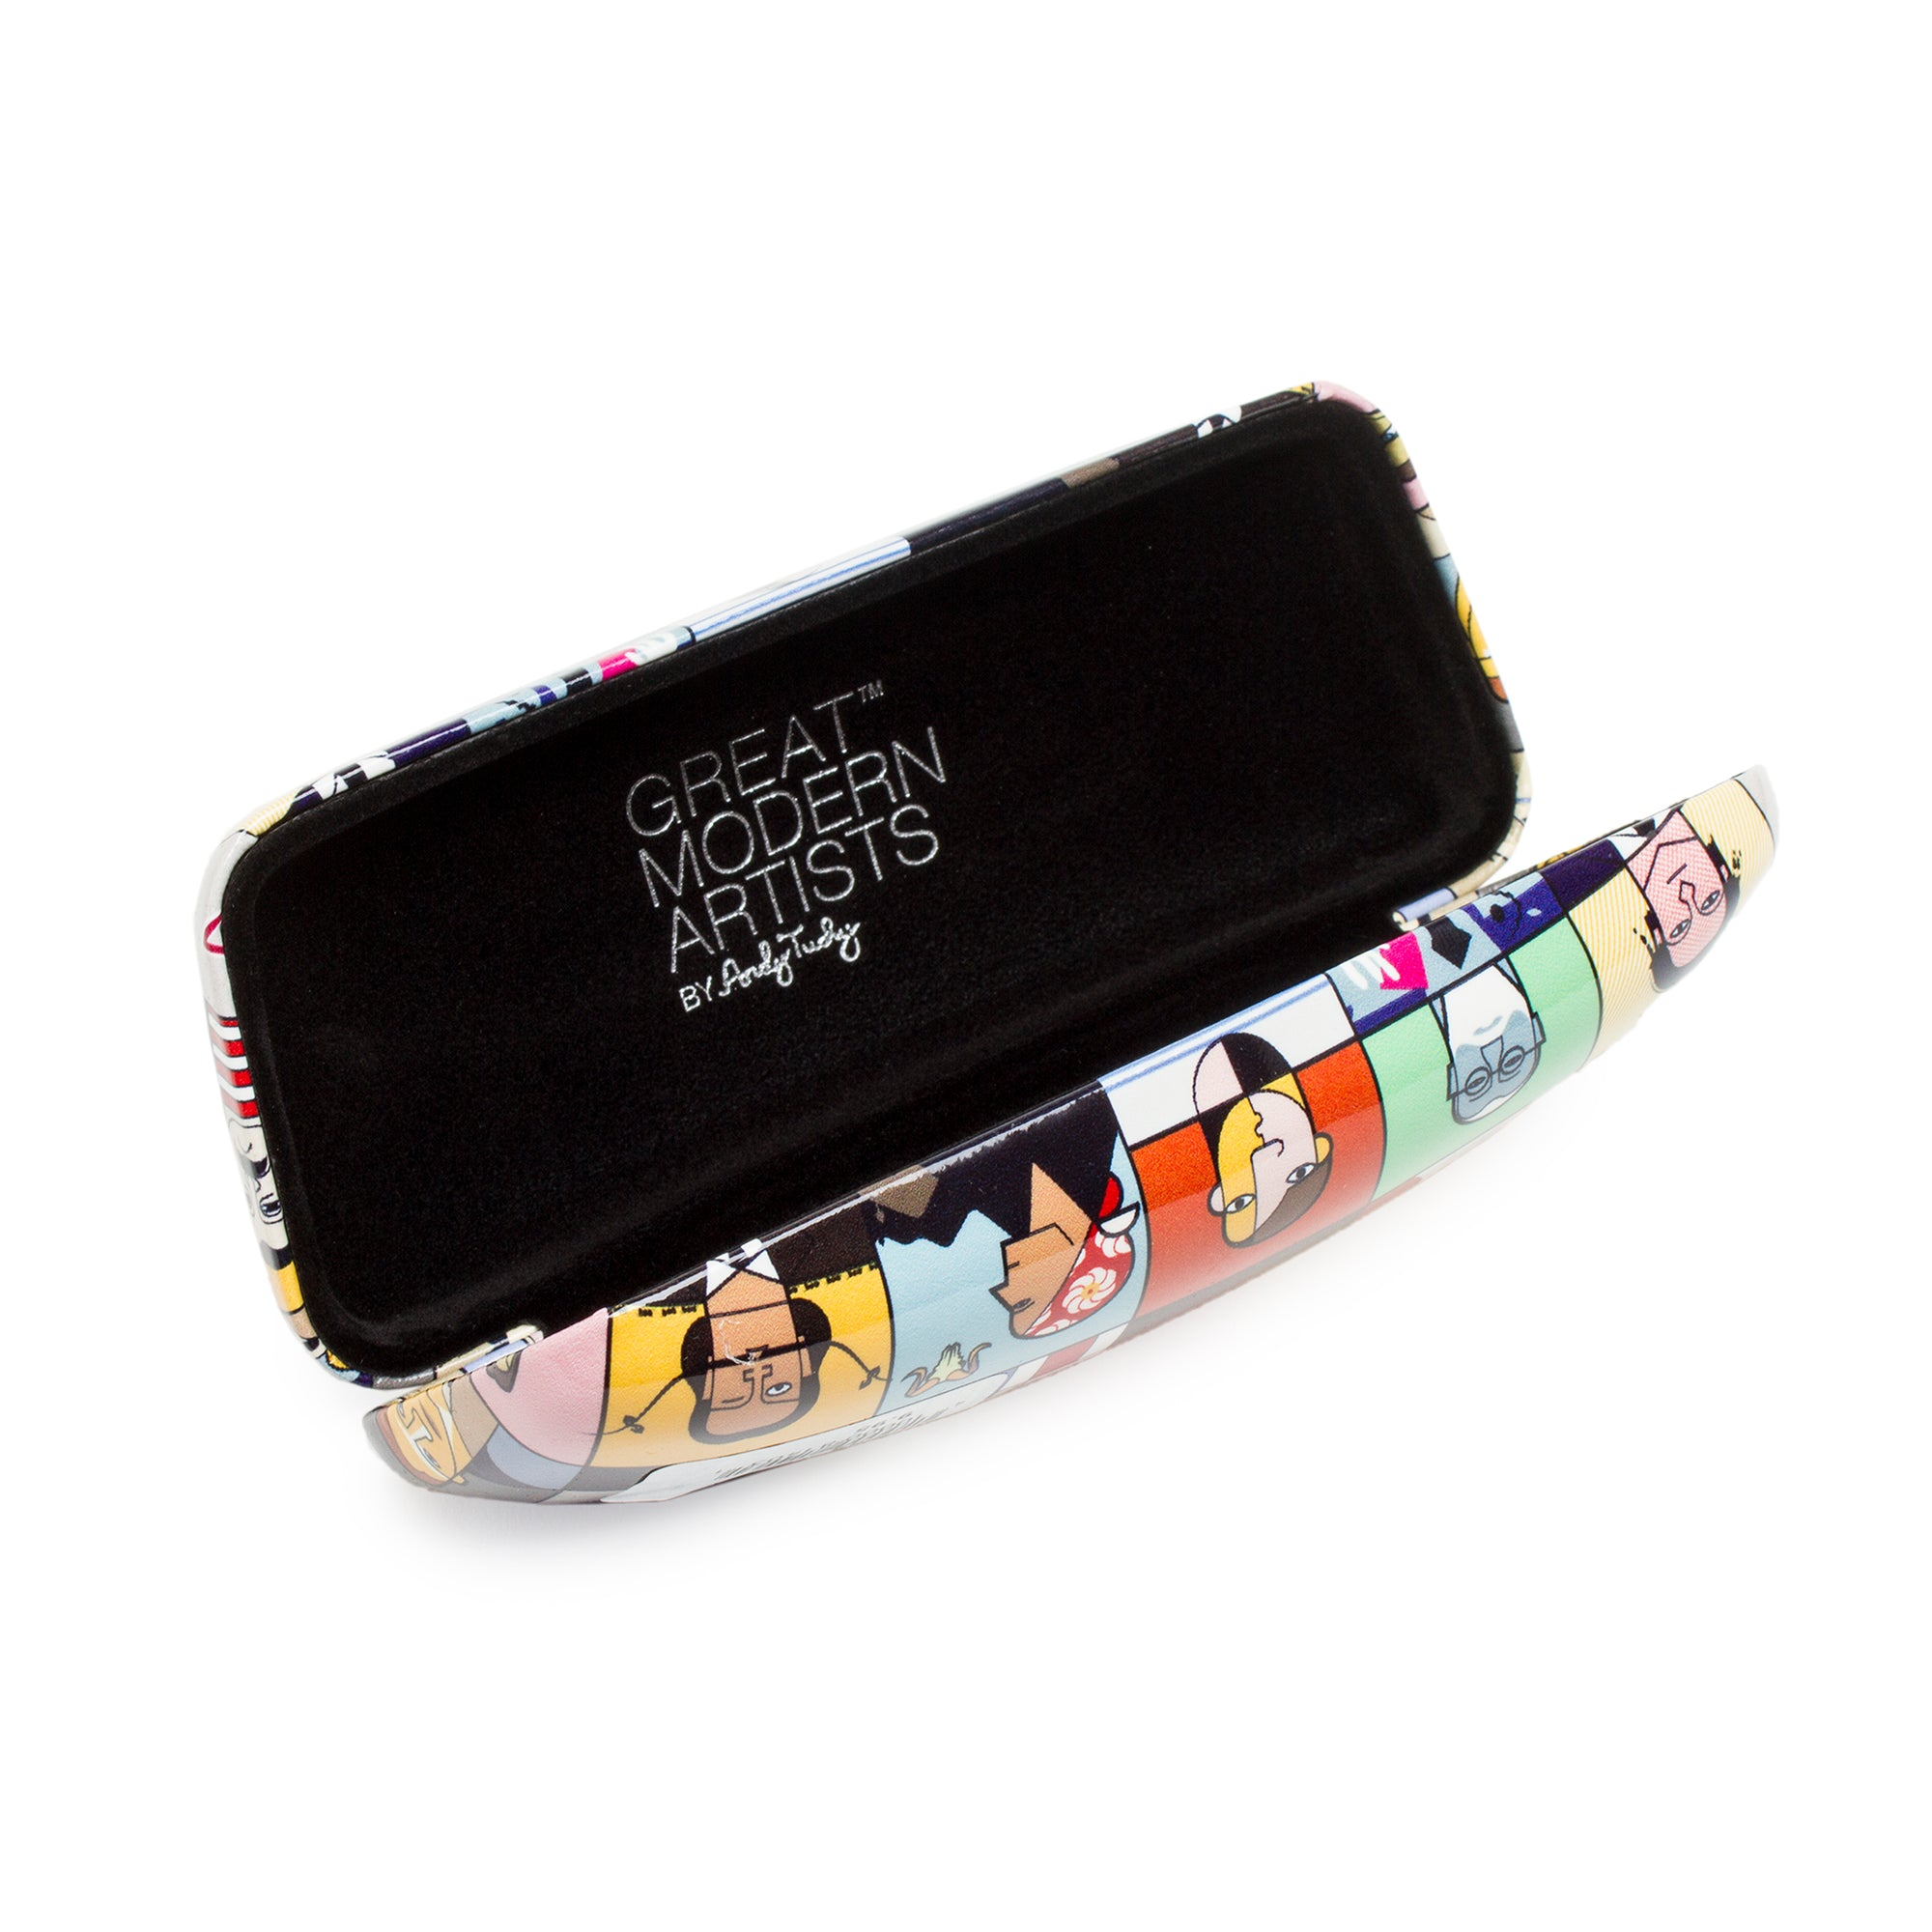 Great Modern Artist Glasses Case | Getty Store